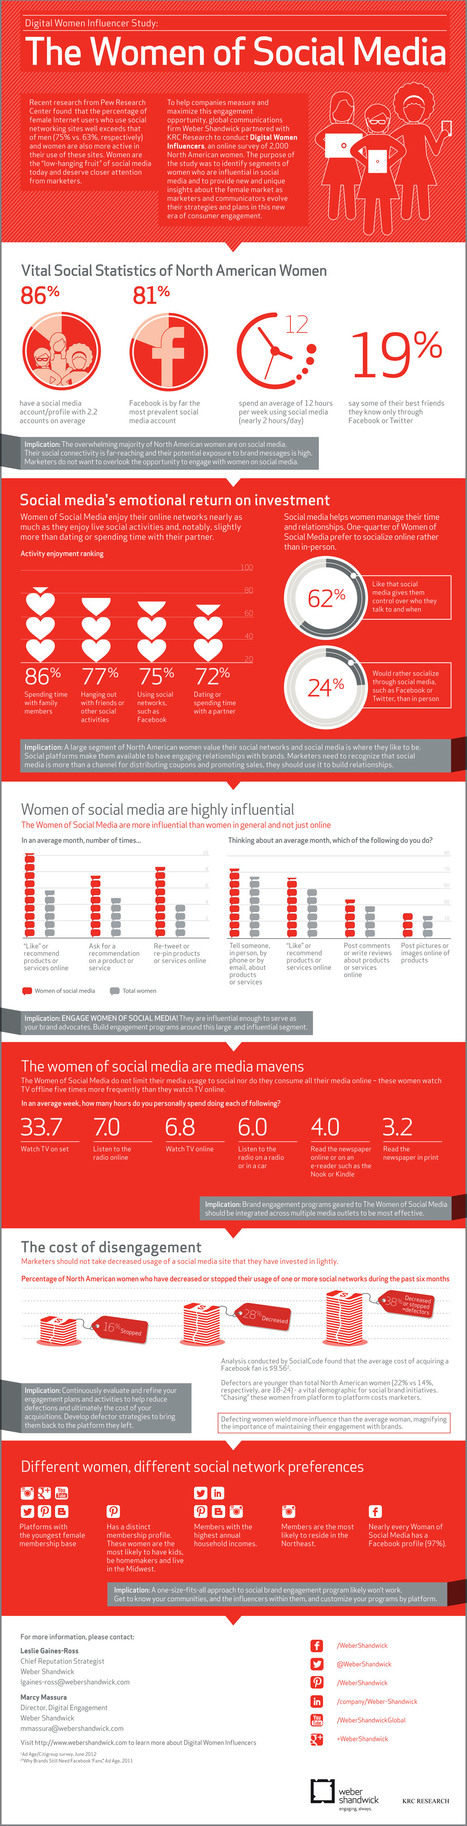 The Women Of Social Media [INFOGRAPHIC] - AllTwitter | Better know and better use Social Media today (facebook, twitter...) | Scoop.it